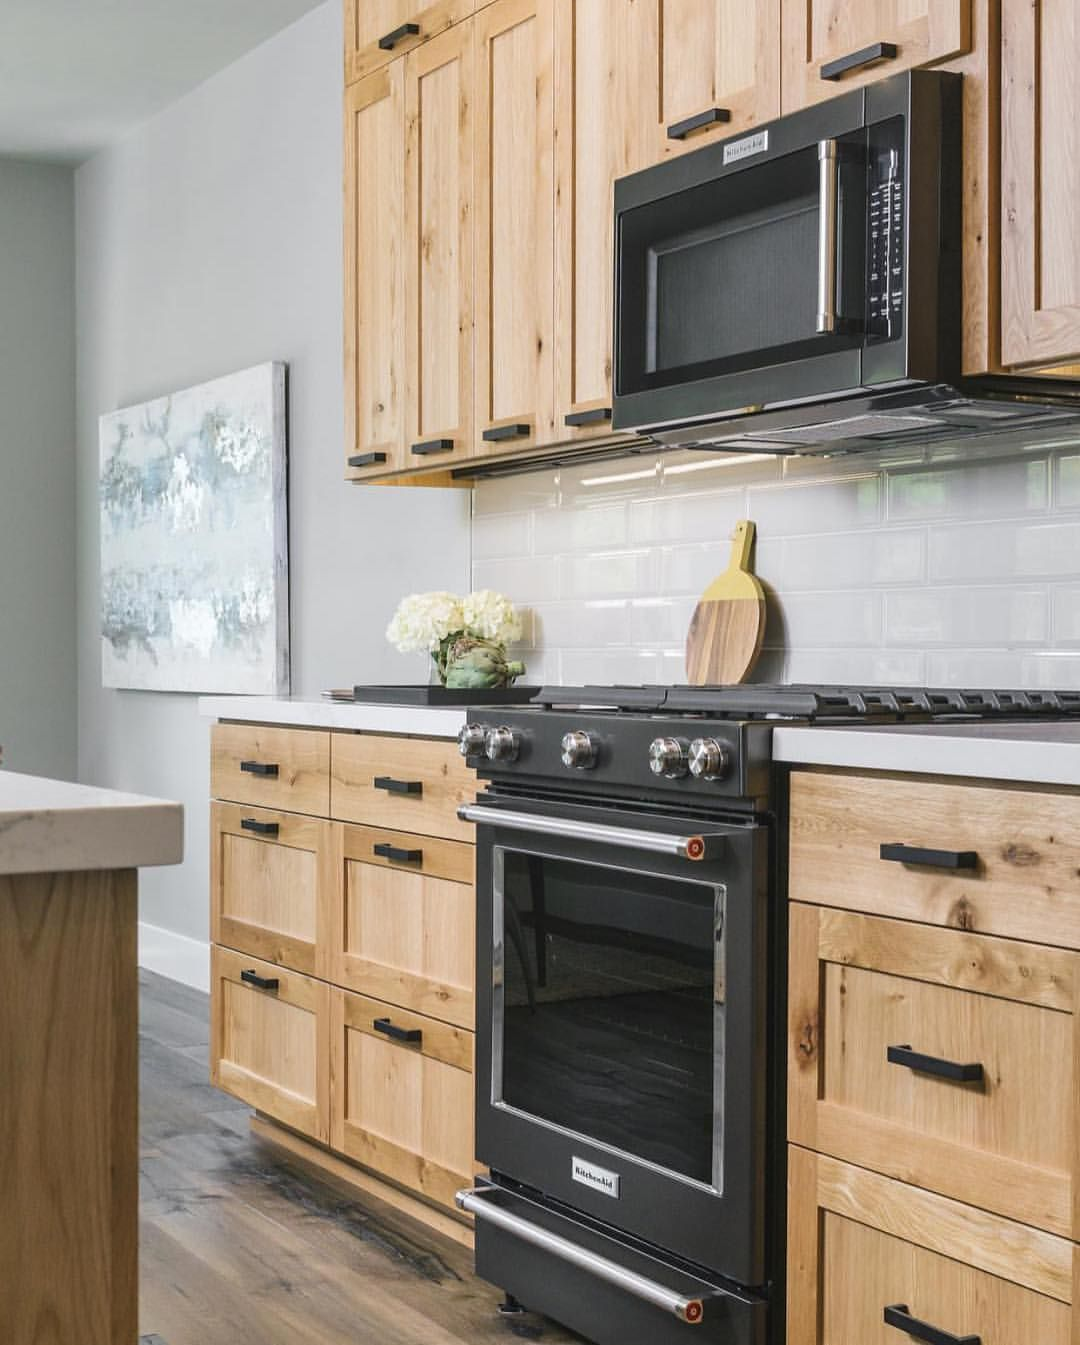 Matte Black Appliances Yes Or No Let Us Know In The Comments Either Way Love This Design From Jordan Wood Kitchen Cabinets Light Wood Cabinets Wood Kitchen